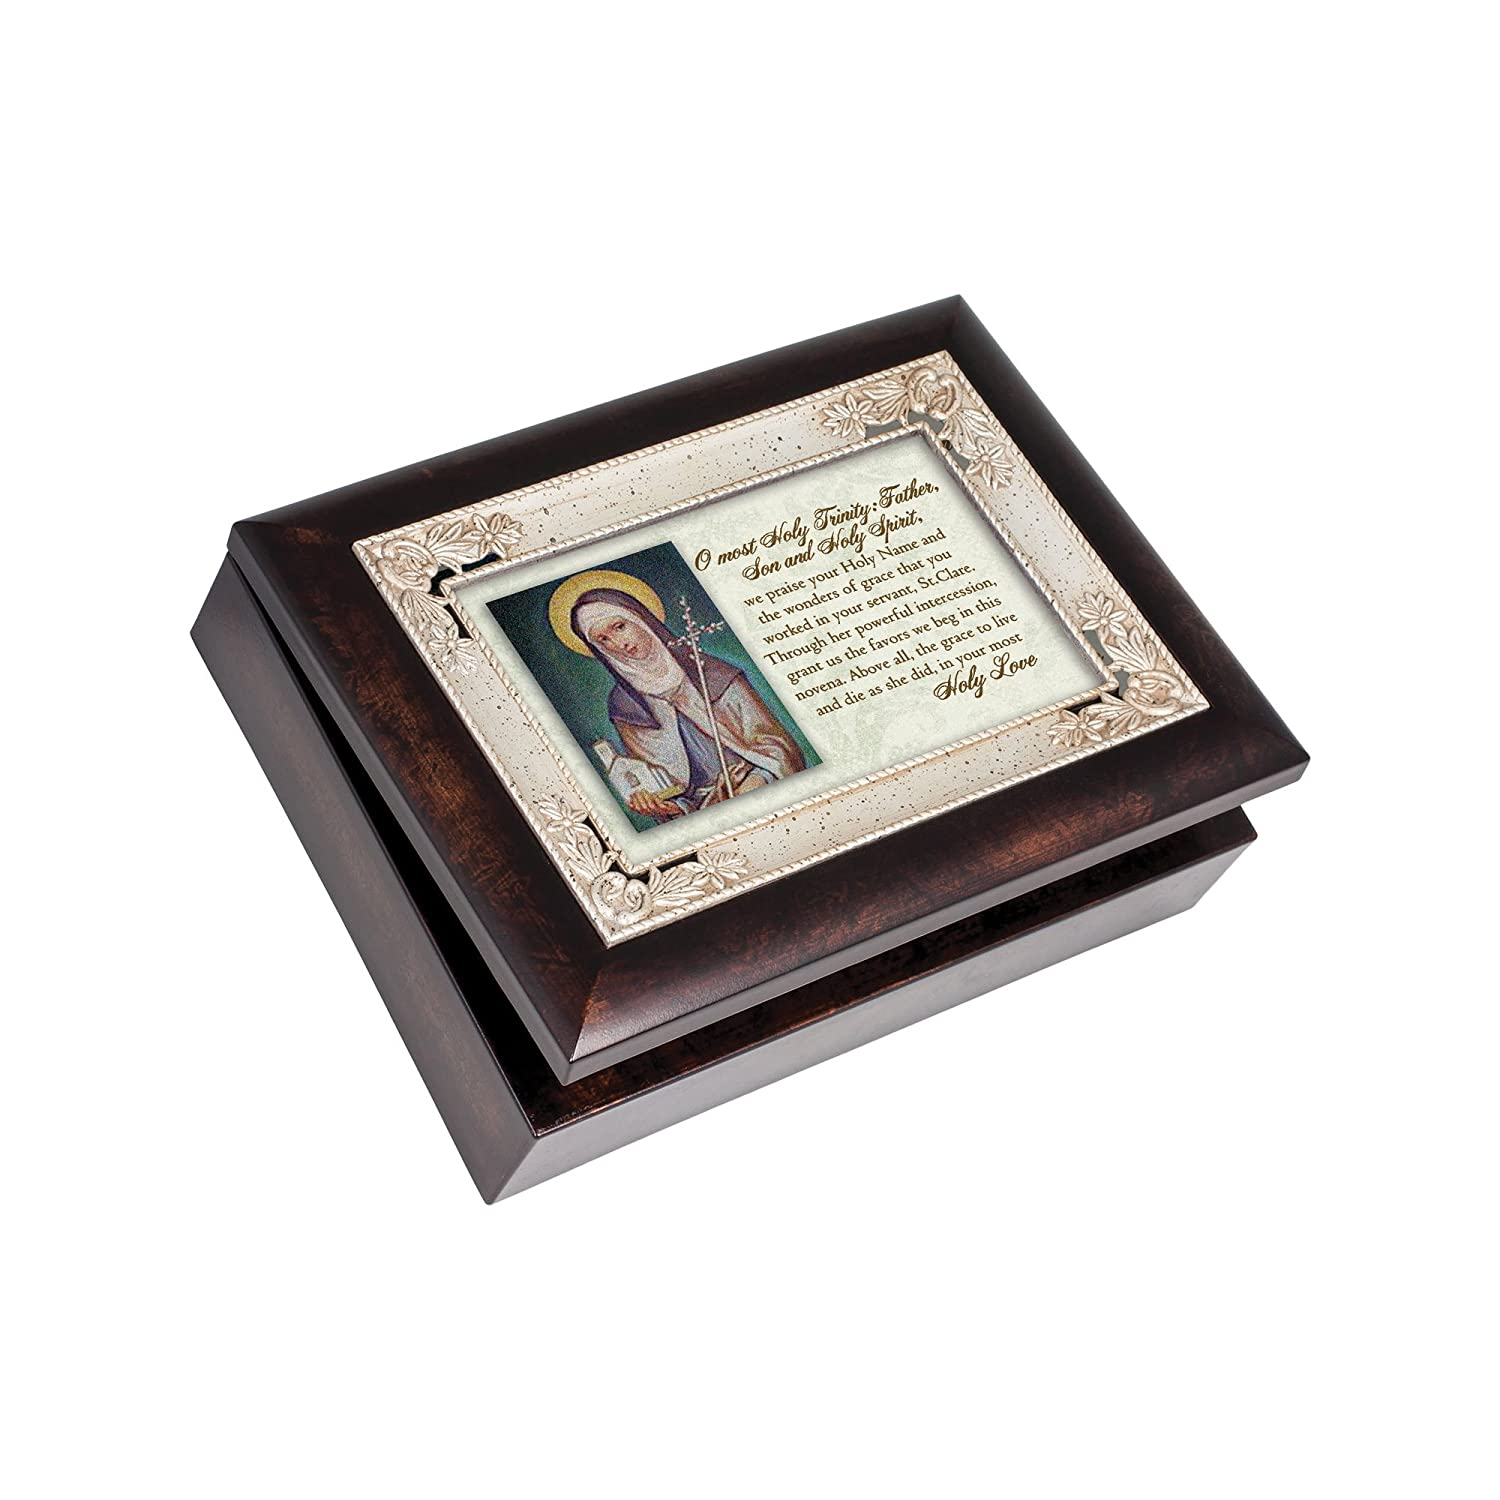 St. Clare Pray for Us Italian Wood Finish Jewelry Music Box Plays Song Ave Maria